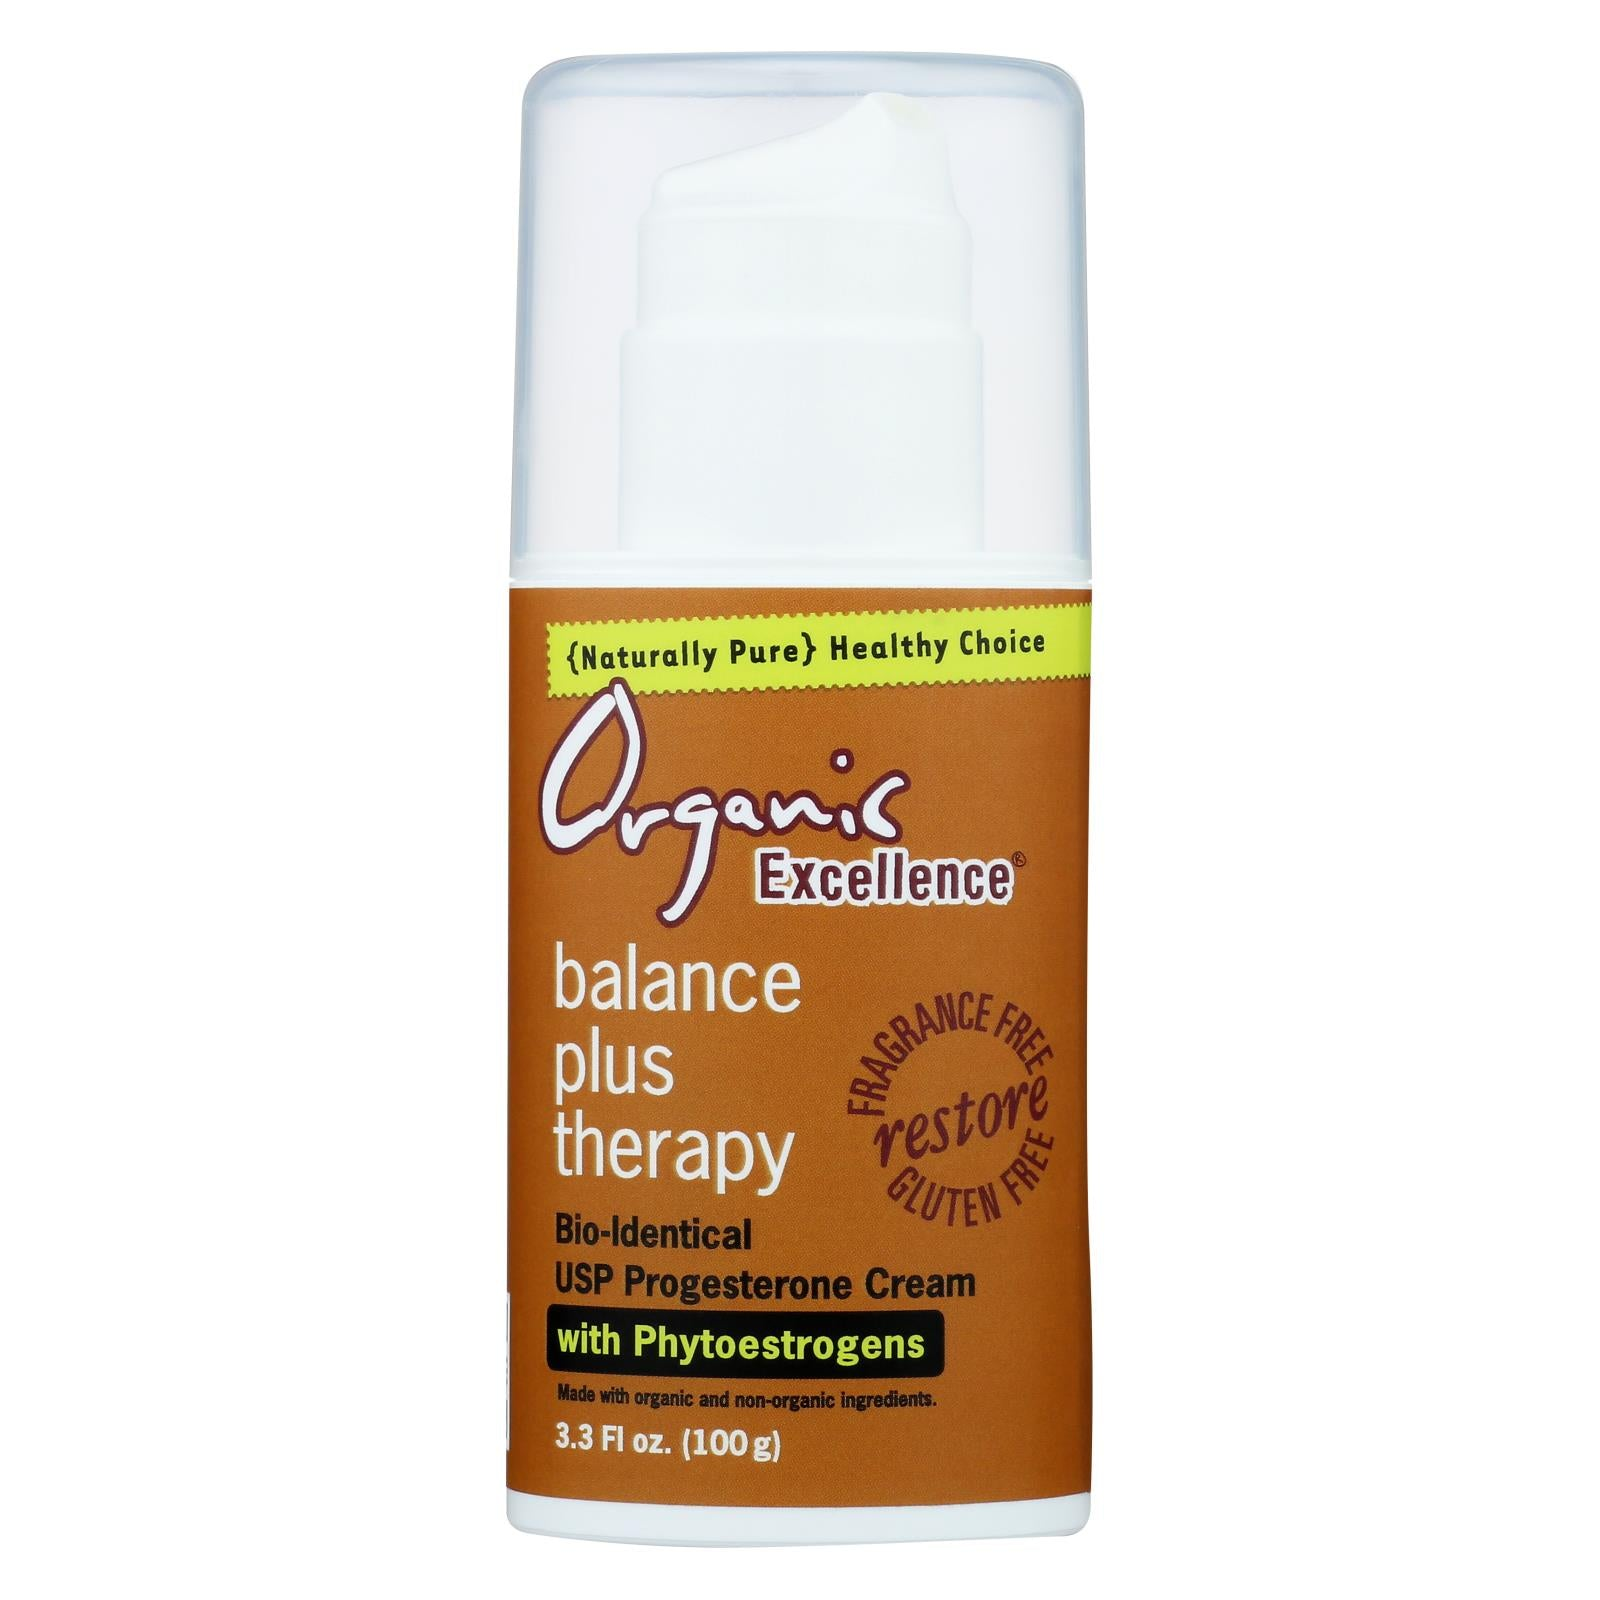 Organic Excellence Balance Plus Therapy Bio-identical Progesterone Cream With Phytoestrogens - 3 Oz HG0134585